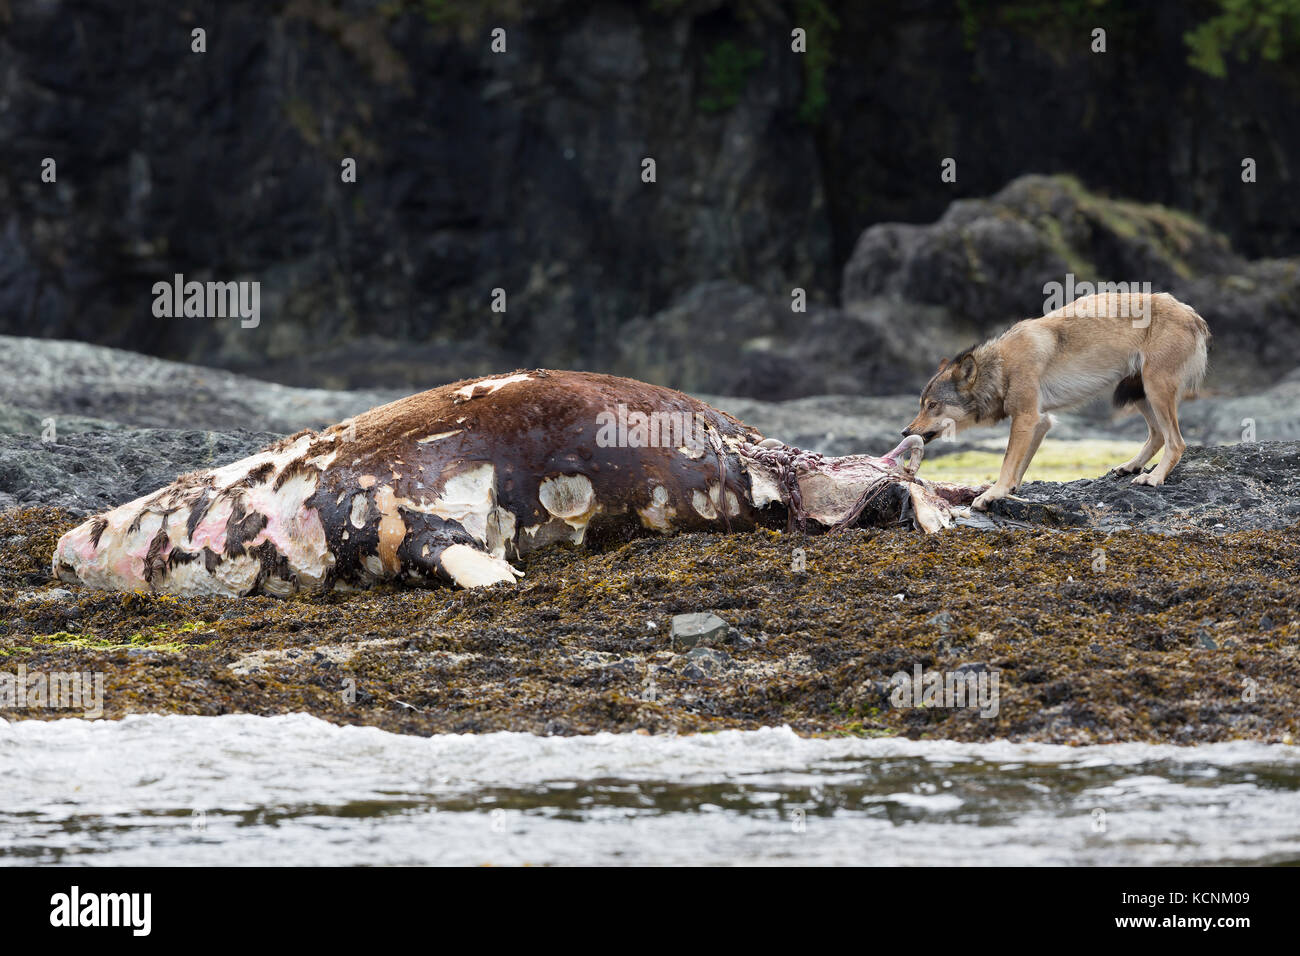 A wolf feeds on the dead carcass of a Stellar sea lion washed up on an island near Kyuquot.  Vancouver Island, British - Stock Image